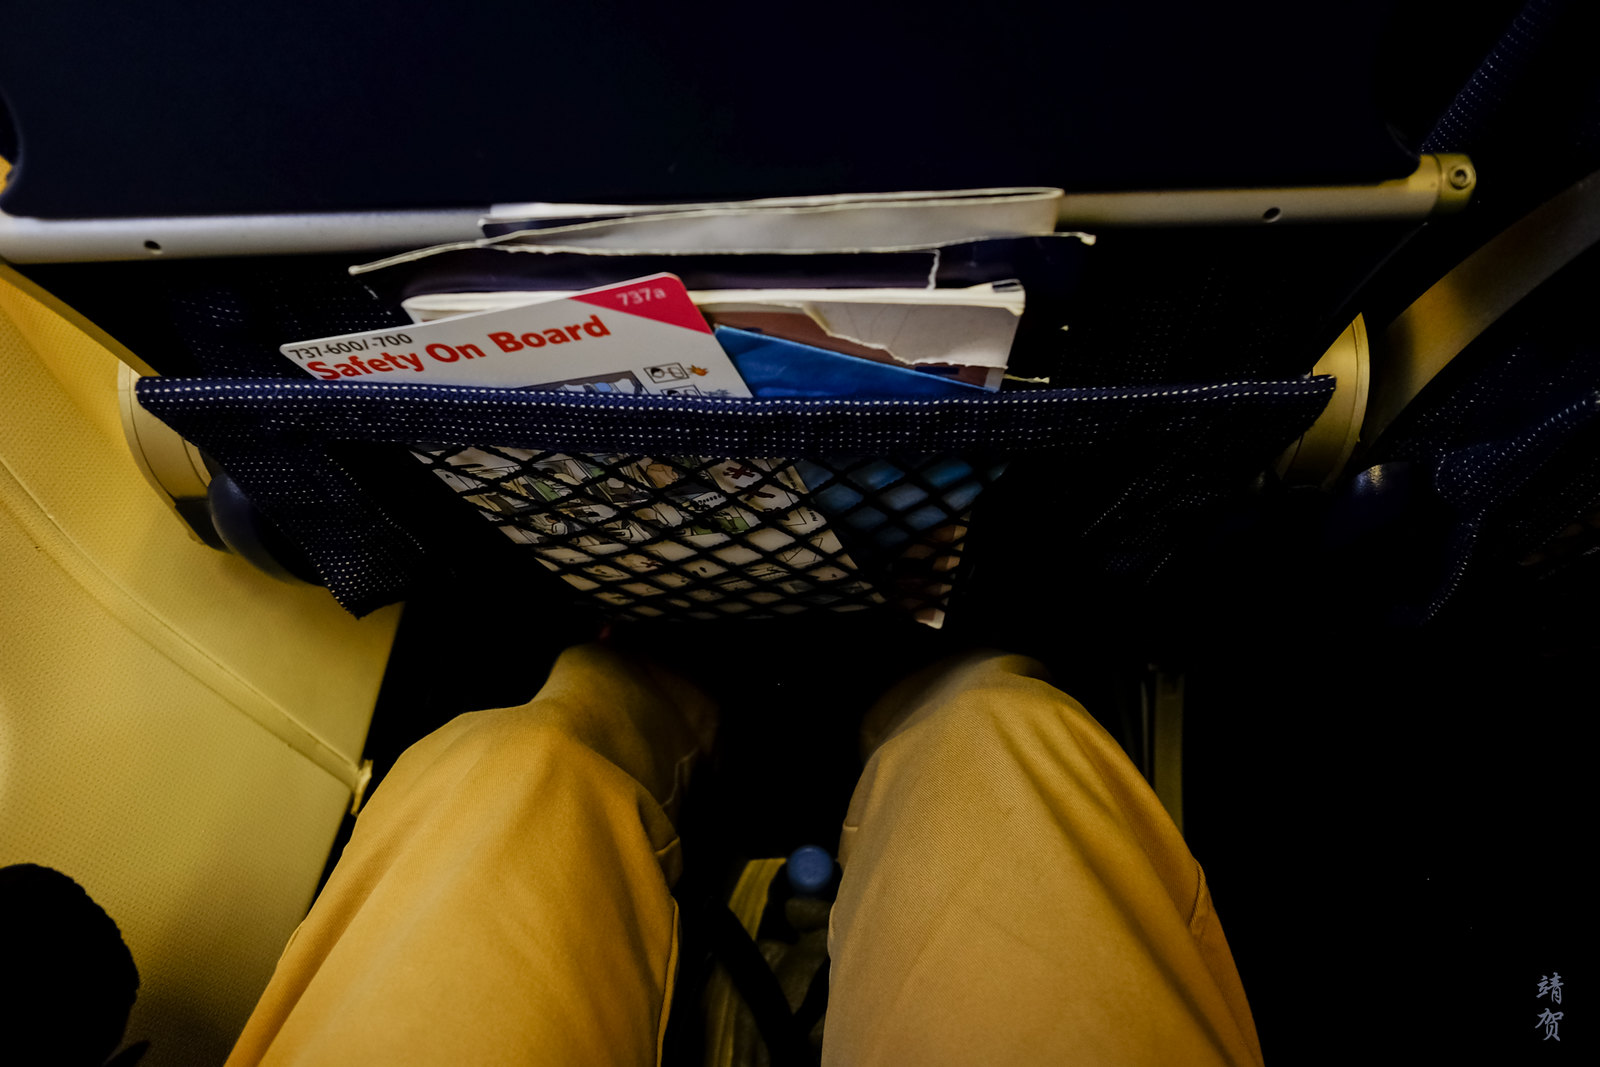 Tight legroom